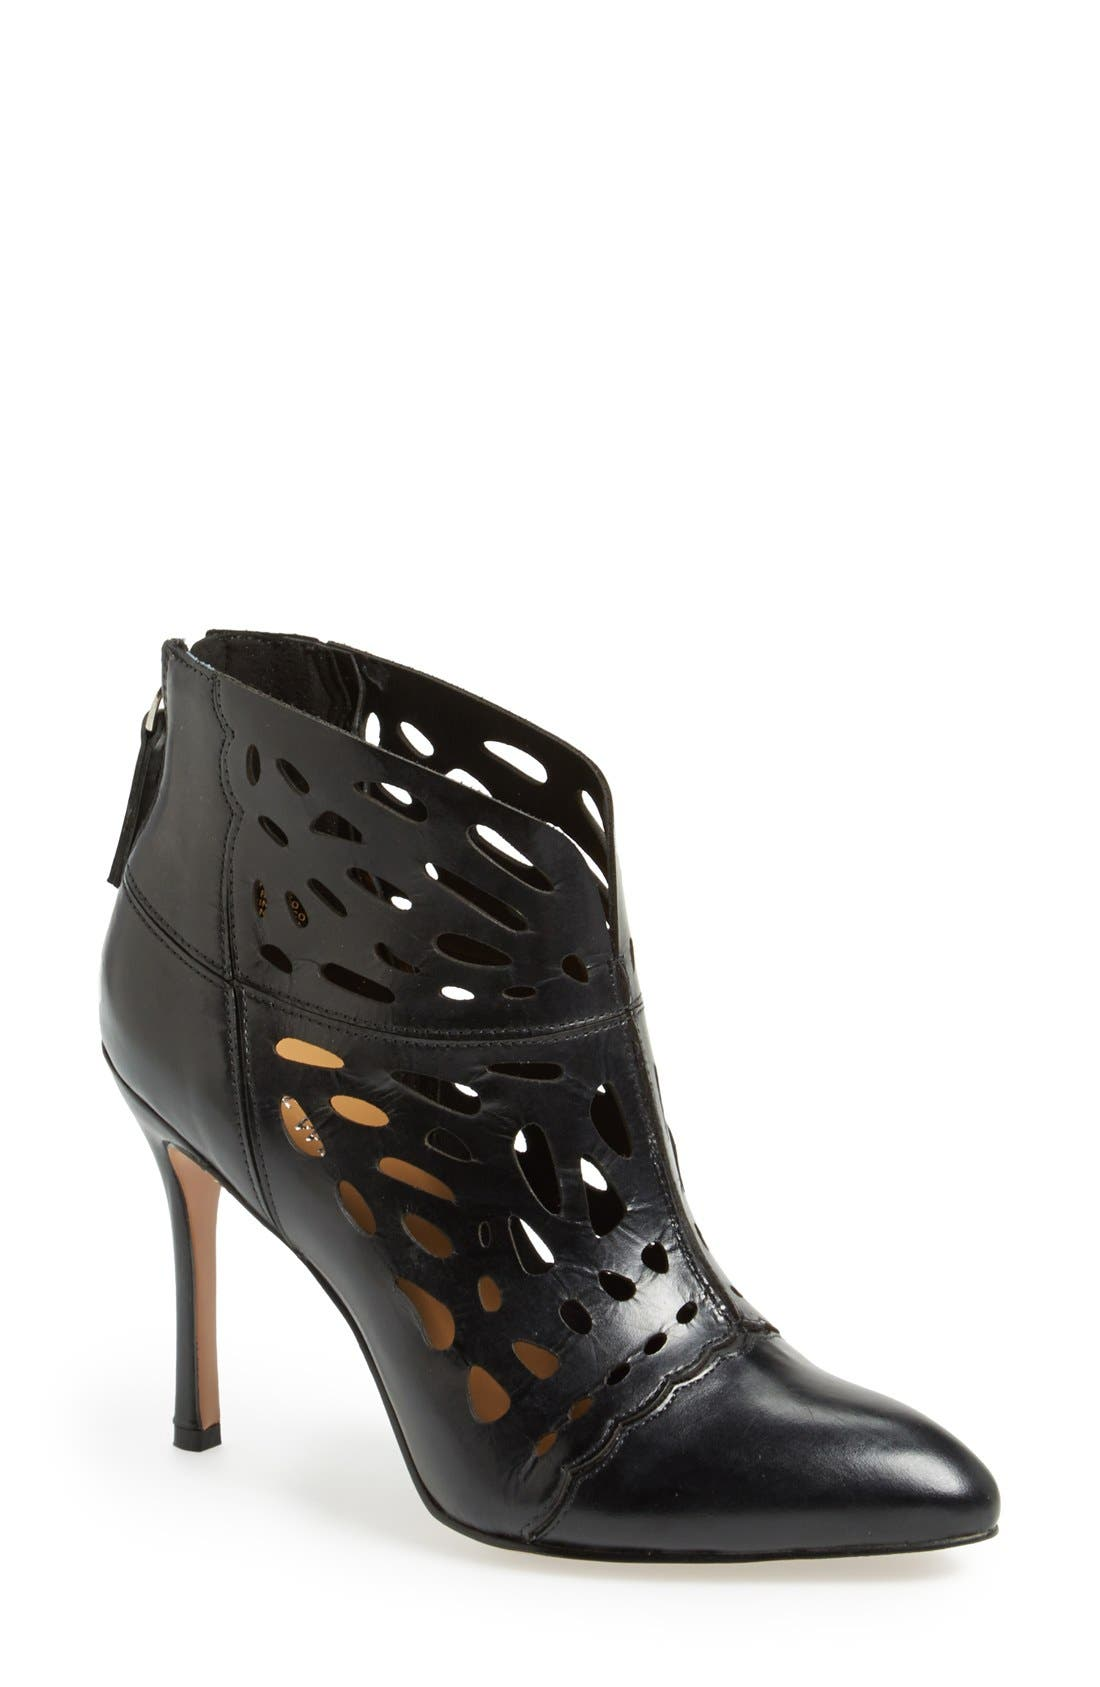 Alternate Image 1 Selected - Nine West 'Darenne' Cutout Ankle Bootie (Women)